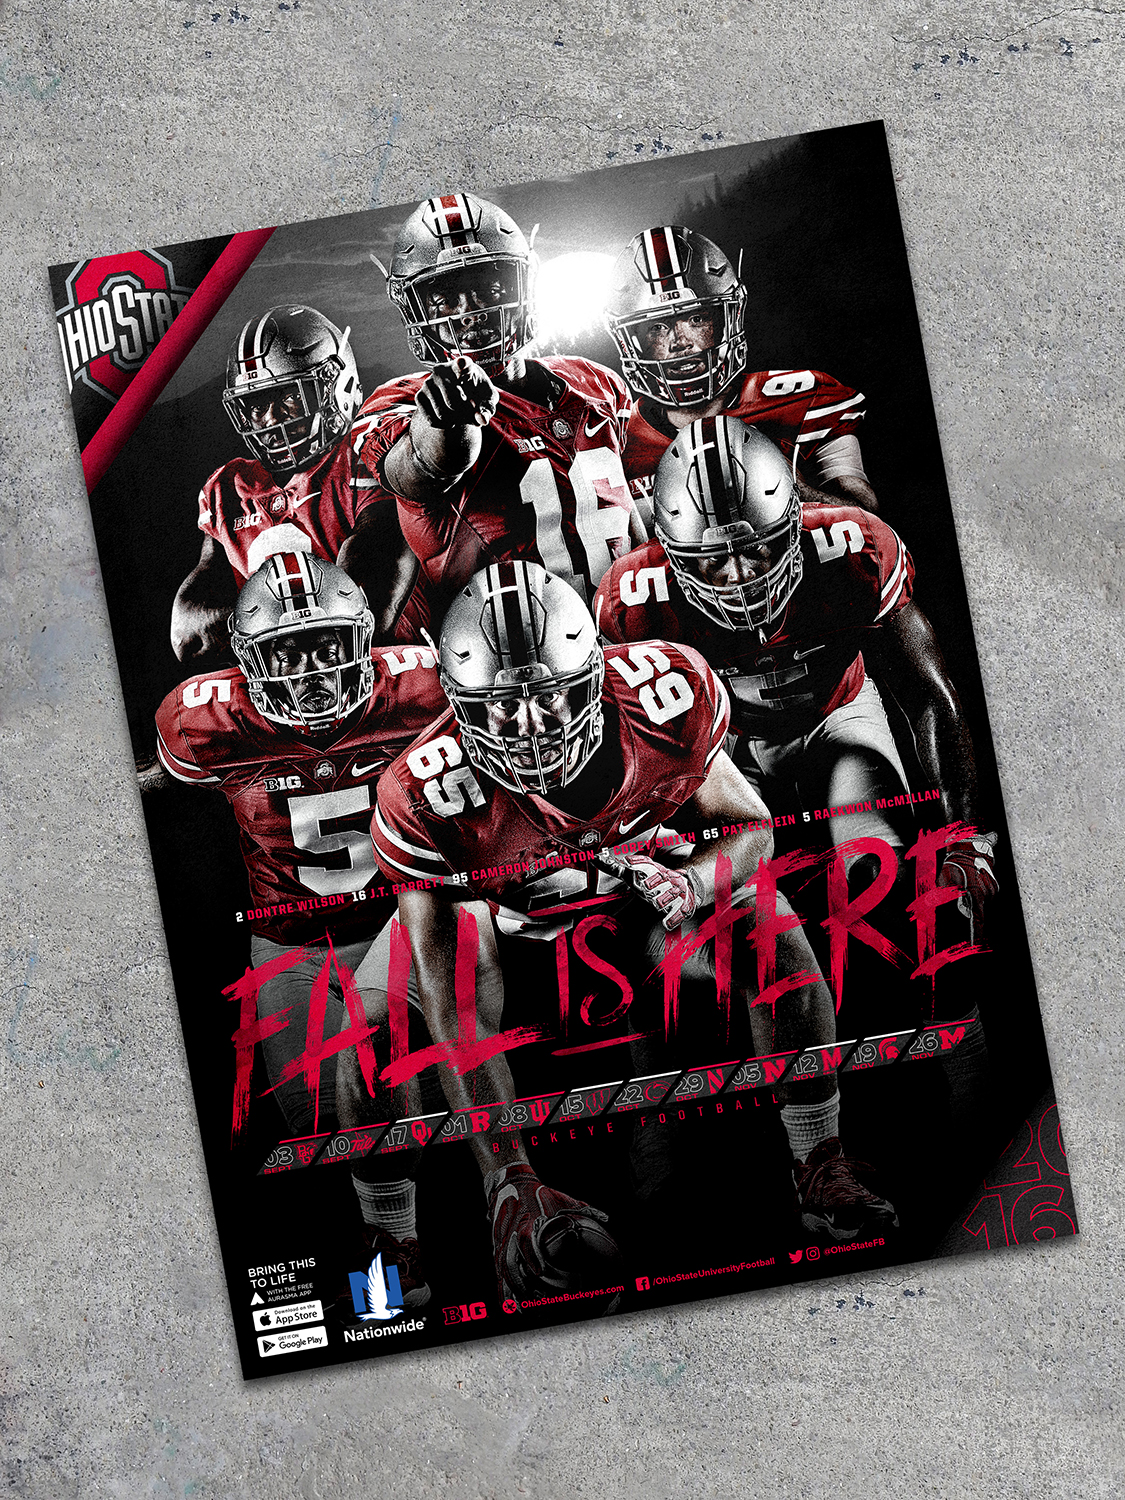 2016 Football Schedule Poster, Ohio State Athletics, 18x24